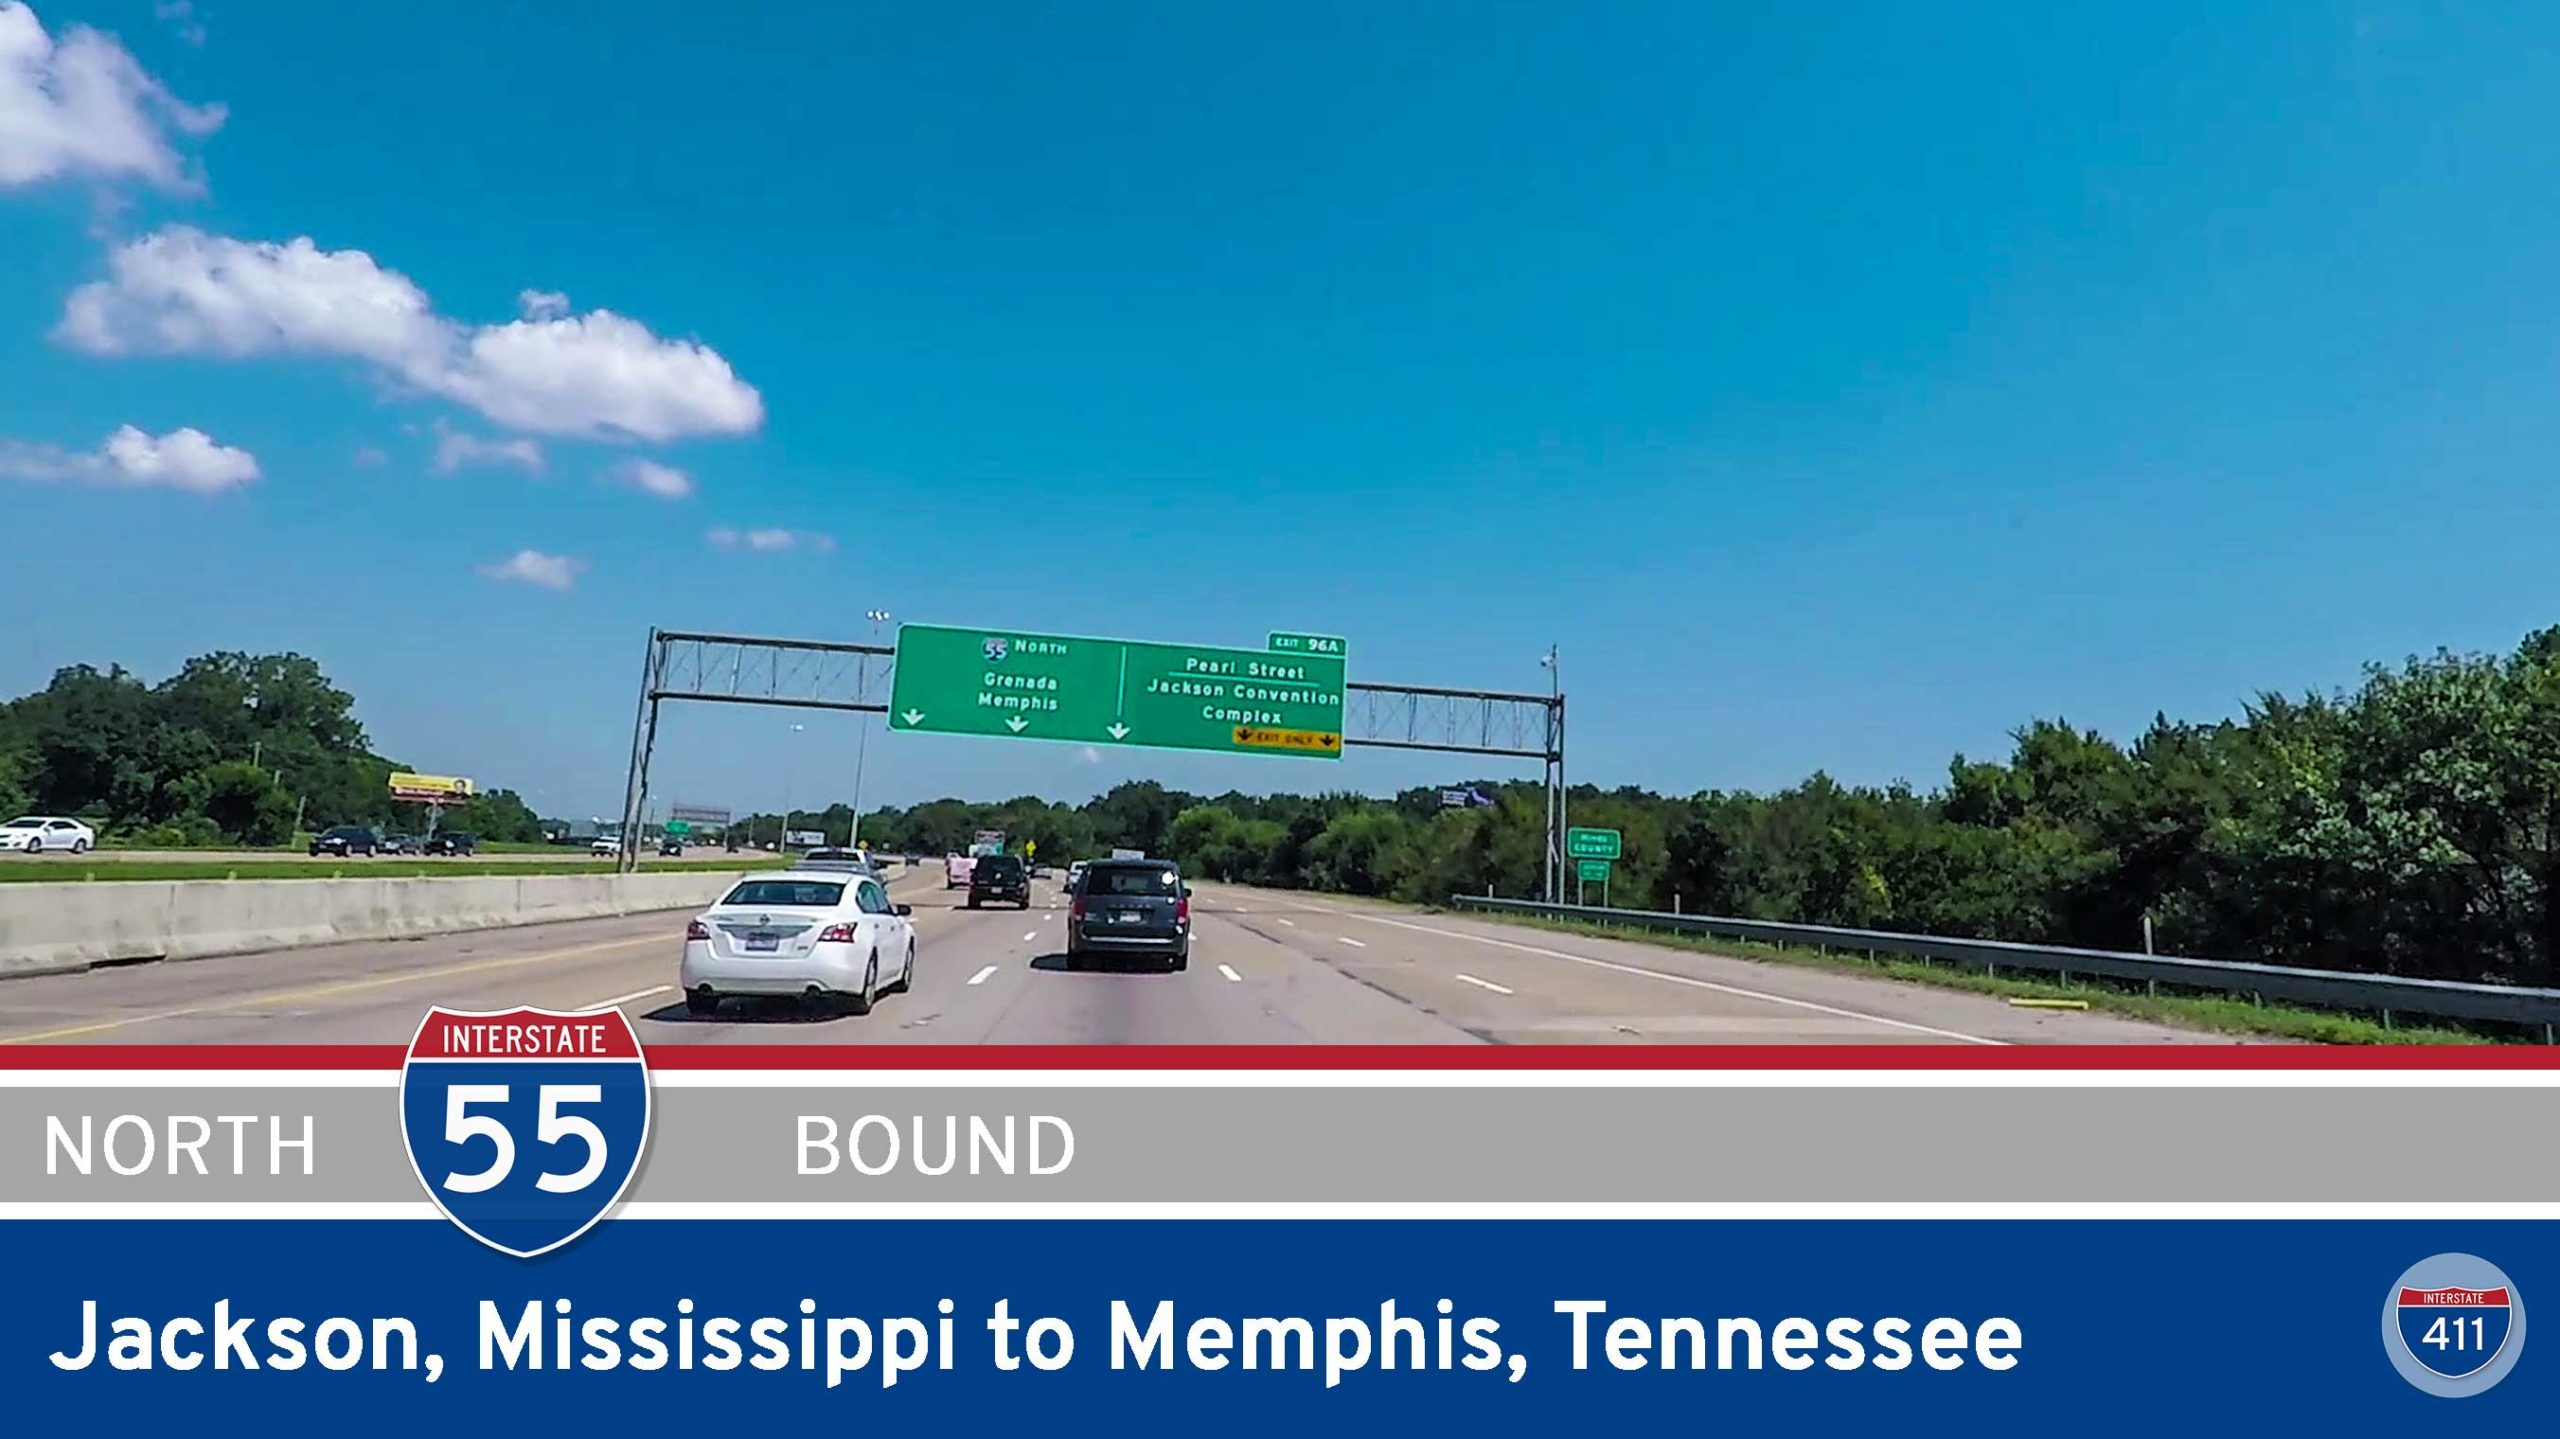 Interstate 55 - Jackson to Memphis - Mississippi